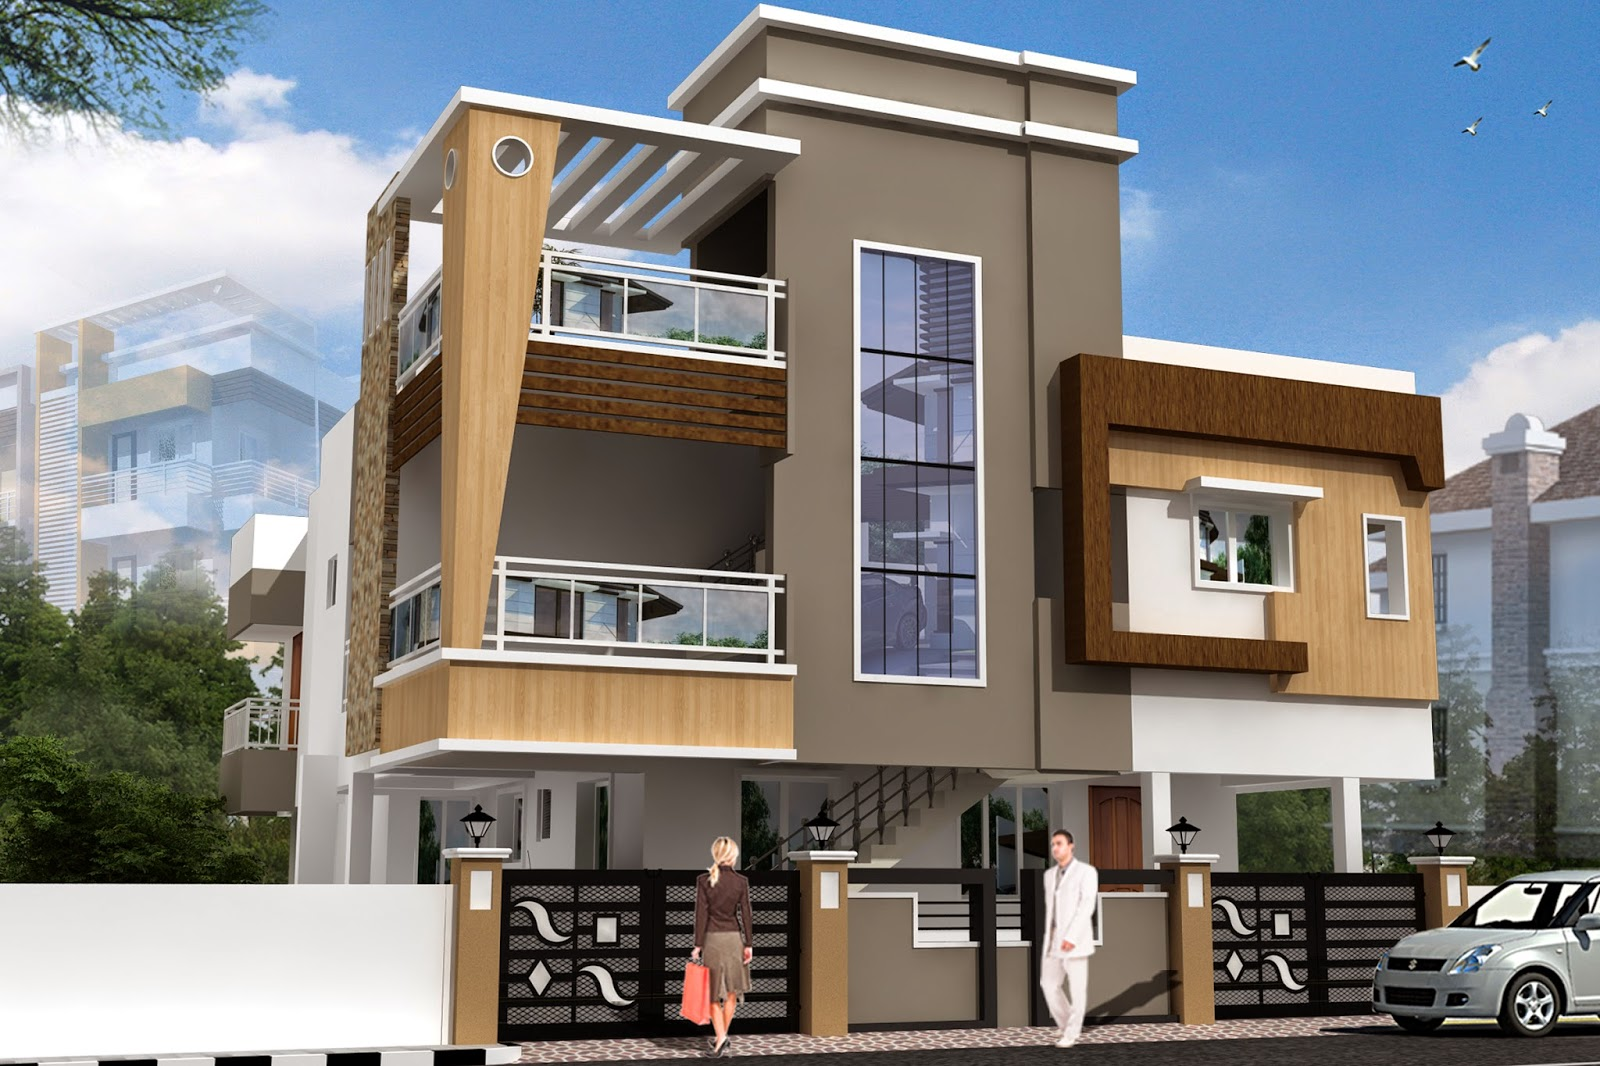 Residential building elevation joy studio design gallery for Elevation design photos residential houses